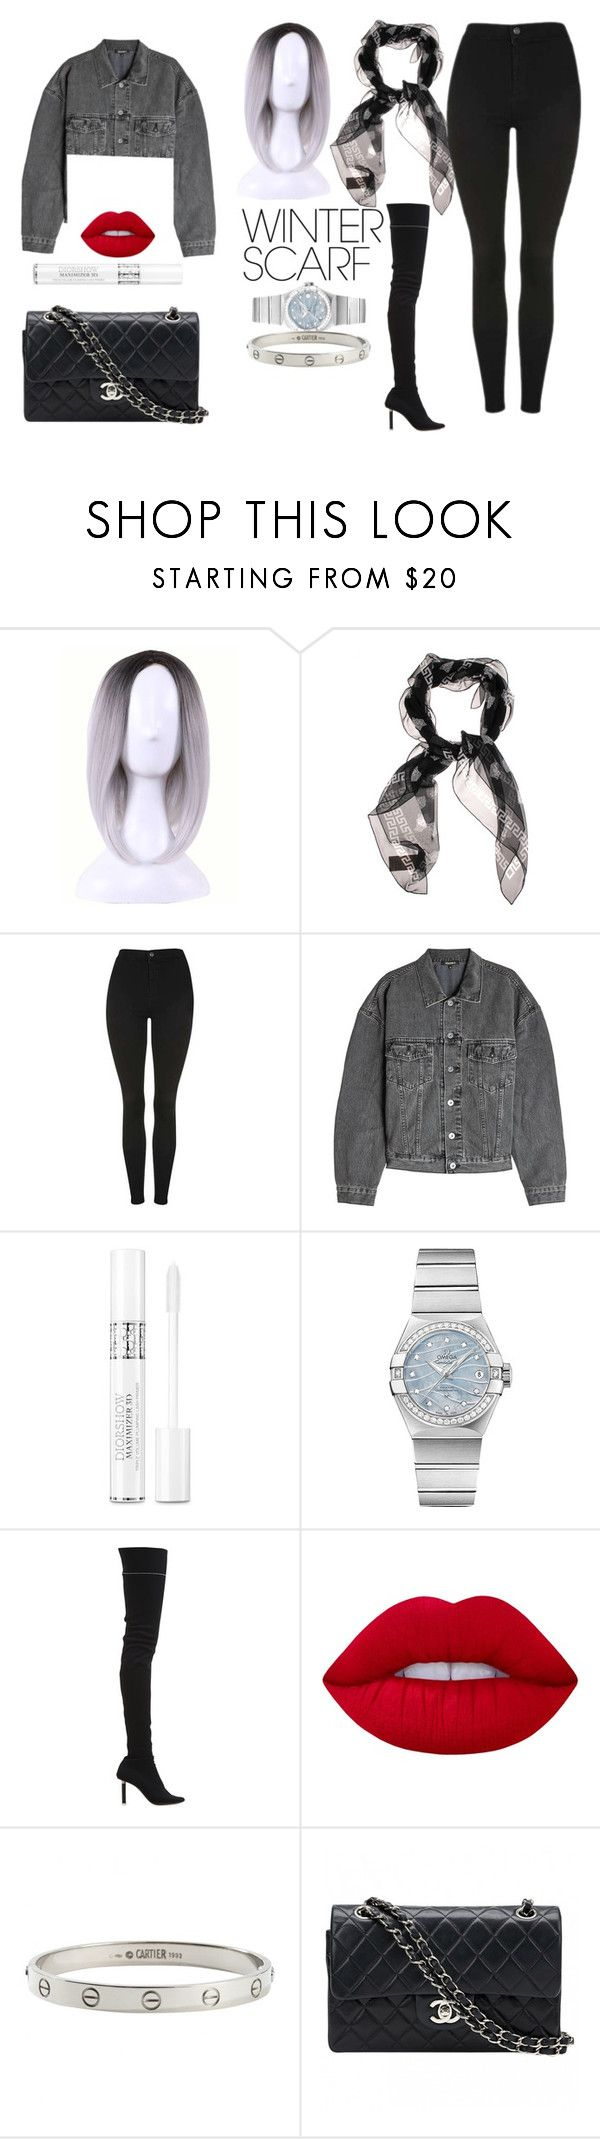 """""""versace versace versace"""" by rubylove123 ❤ liked on Polyvore featuring WithChic, Versace, Topshop, Yeezy by Kanye West, Christian Dior, OMEGA, Vetements, Lime Crime, Cartier and Chanel"""